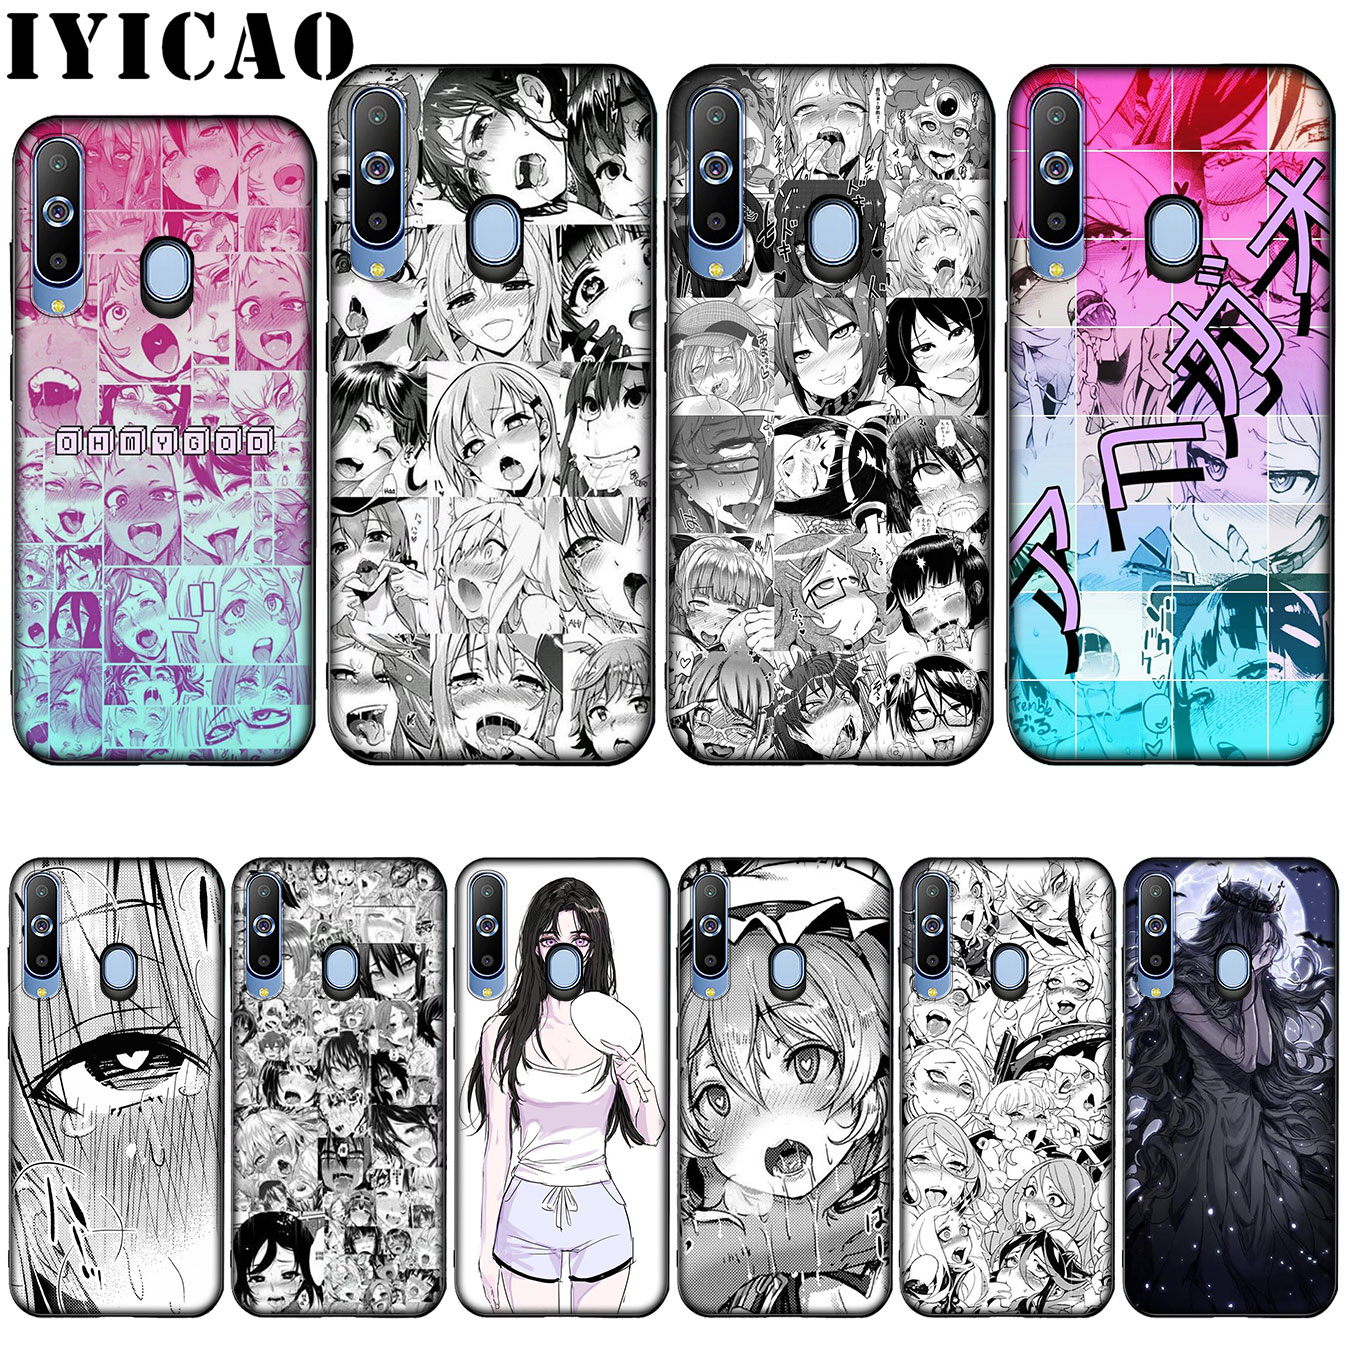 IYICAO Anime girl cartoon japan Silicone Soft Case for Samsung Galaxy A10 A30 A40 A50 A70 M10 M20 M30 Cover image